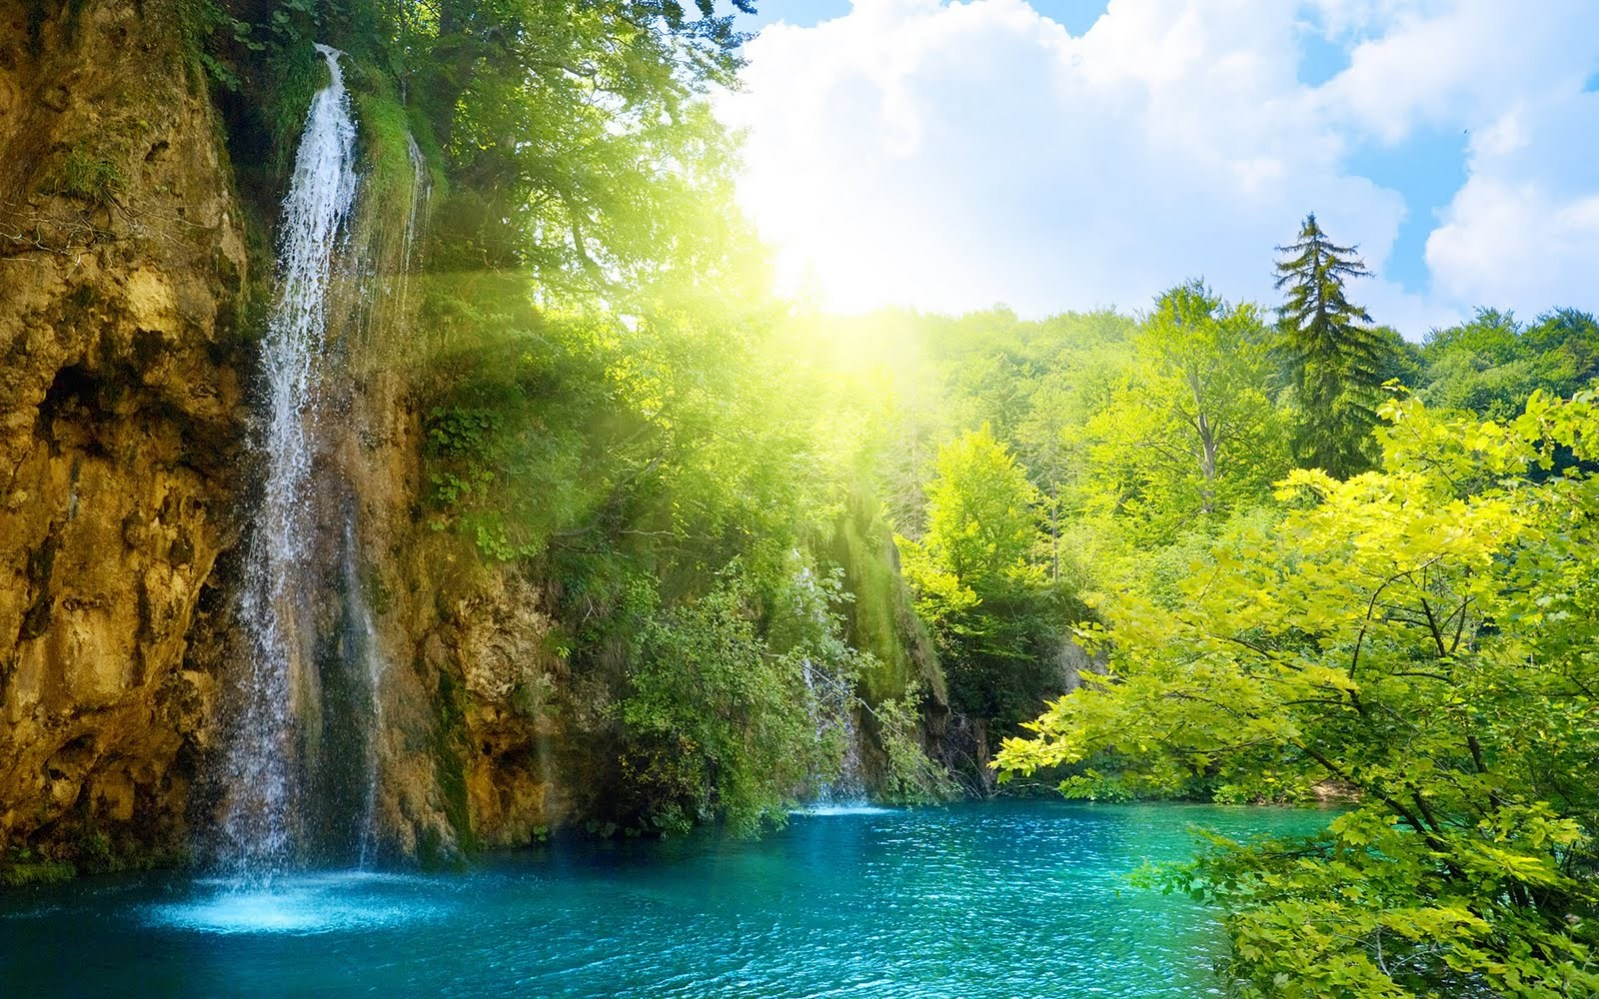 Earthly Heaven Fdc71-best-top-desktop-beautiful-nature-wallpapers-hd-nature-wallpaper-picture-image-photo-15